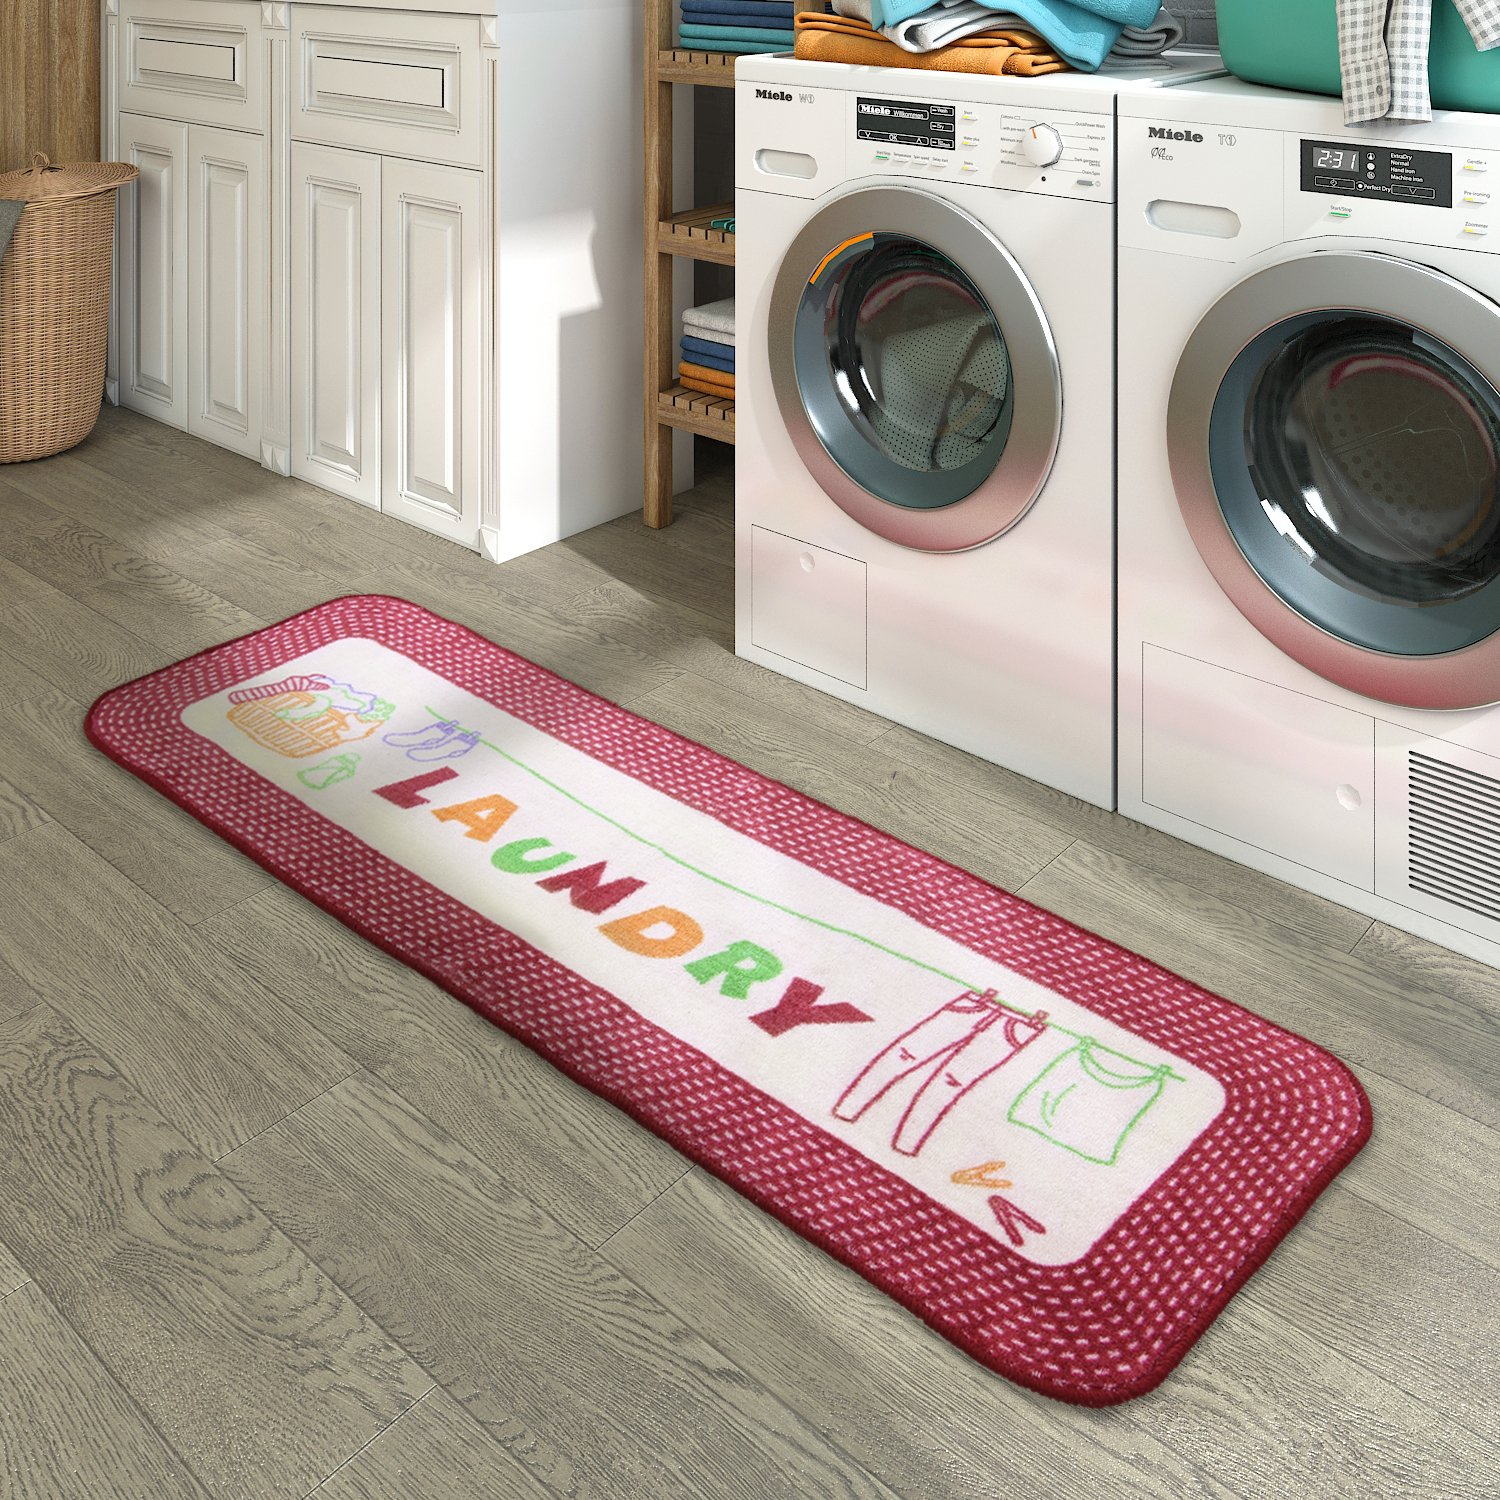 Lifewit Laundry Rug Runner in Vintage Style, Kitchen Rug Stain Resistant, 59 x 19.7 x 0.24 inch